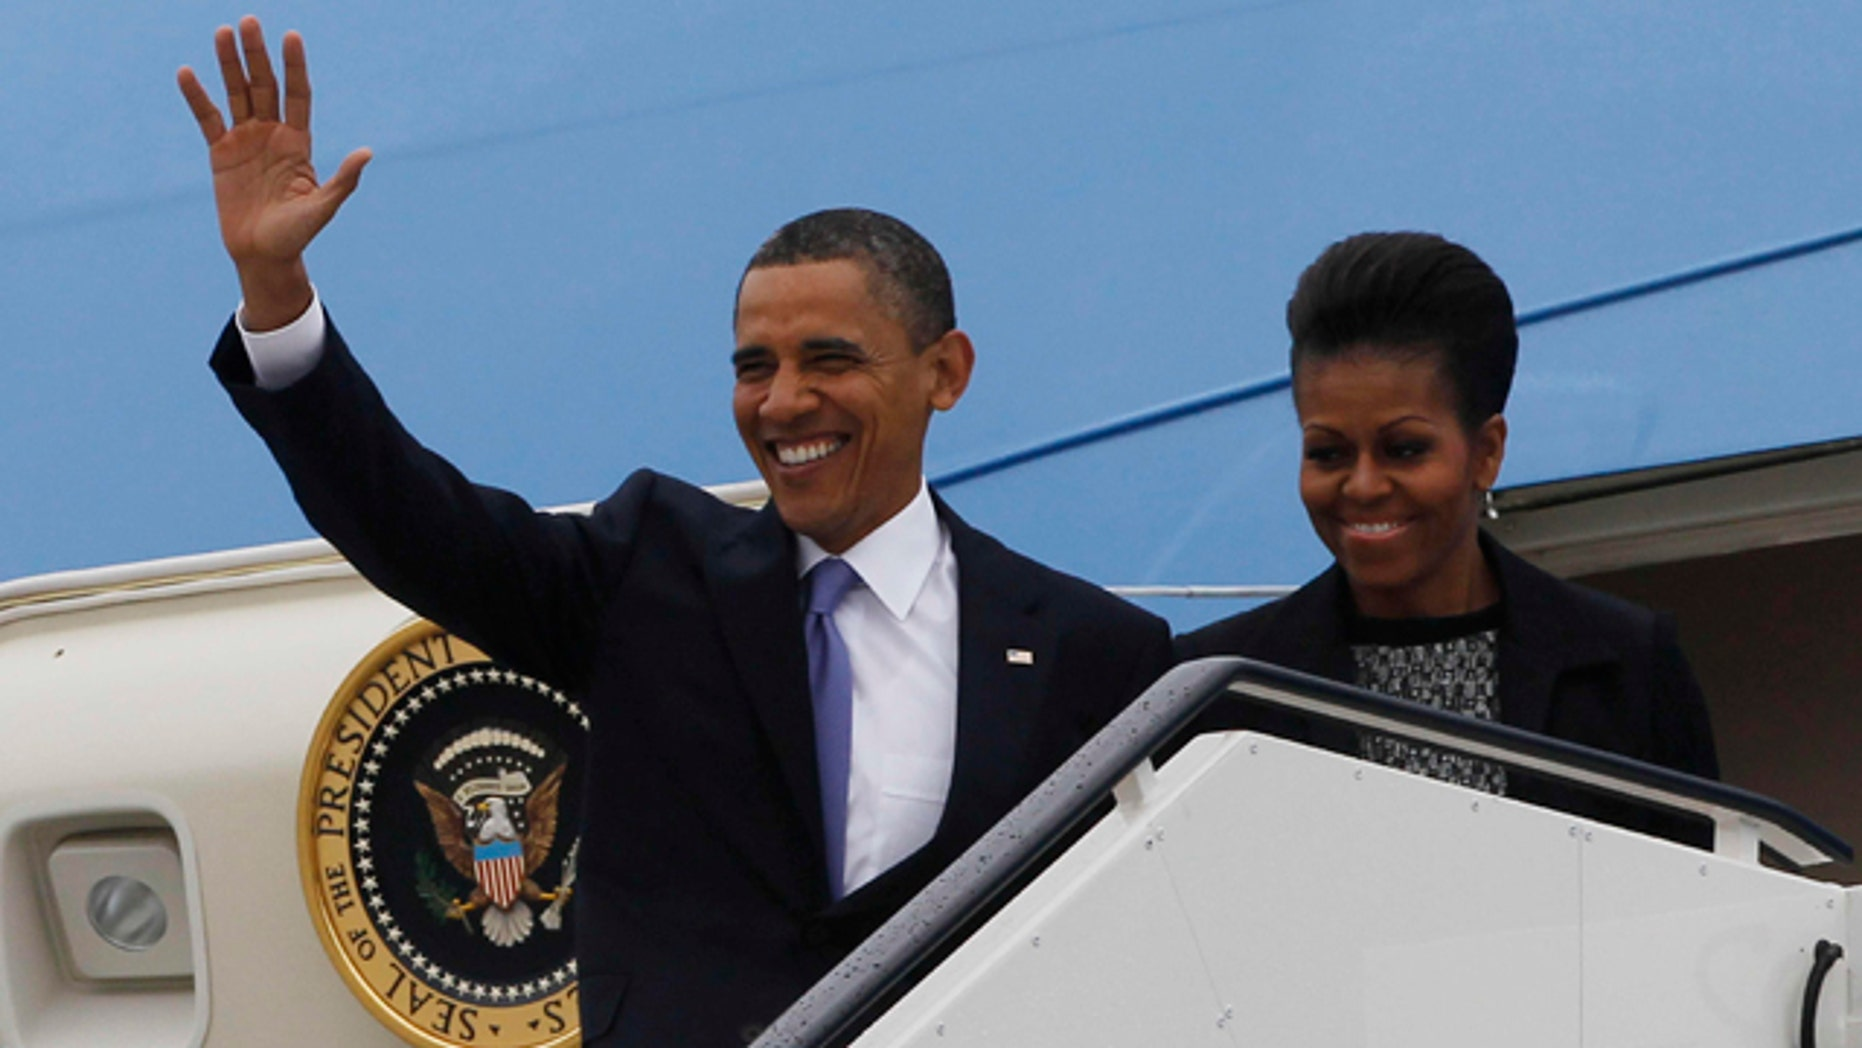 May 23: U.S. President Barack Obama and first lady Michelle Obama step off Air Force One as they arrive in Dublin, Ireland. President Barack Obama opens a six-day European tour with a quick dash through Ireland, where he will celebrate his own Irish roots and look to give a boost to a nation grappling with the fallout from its financial collapse.